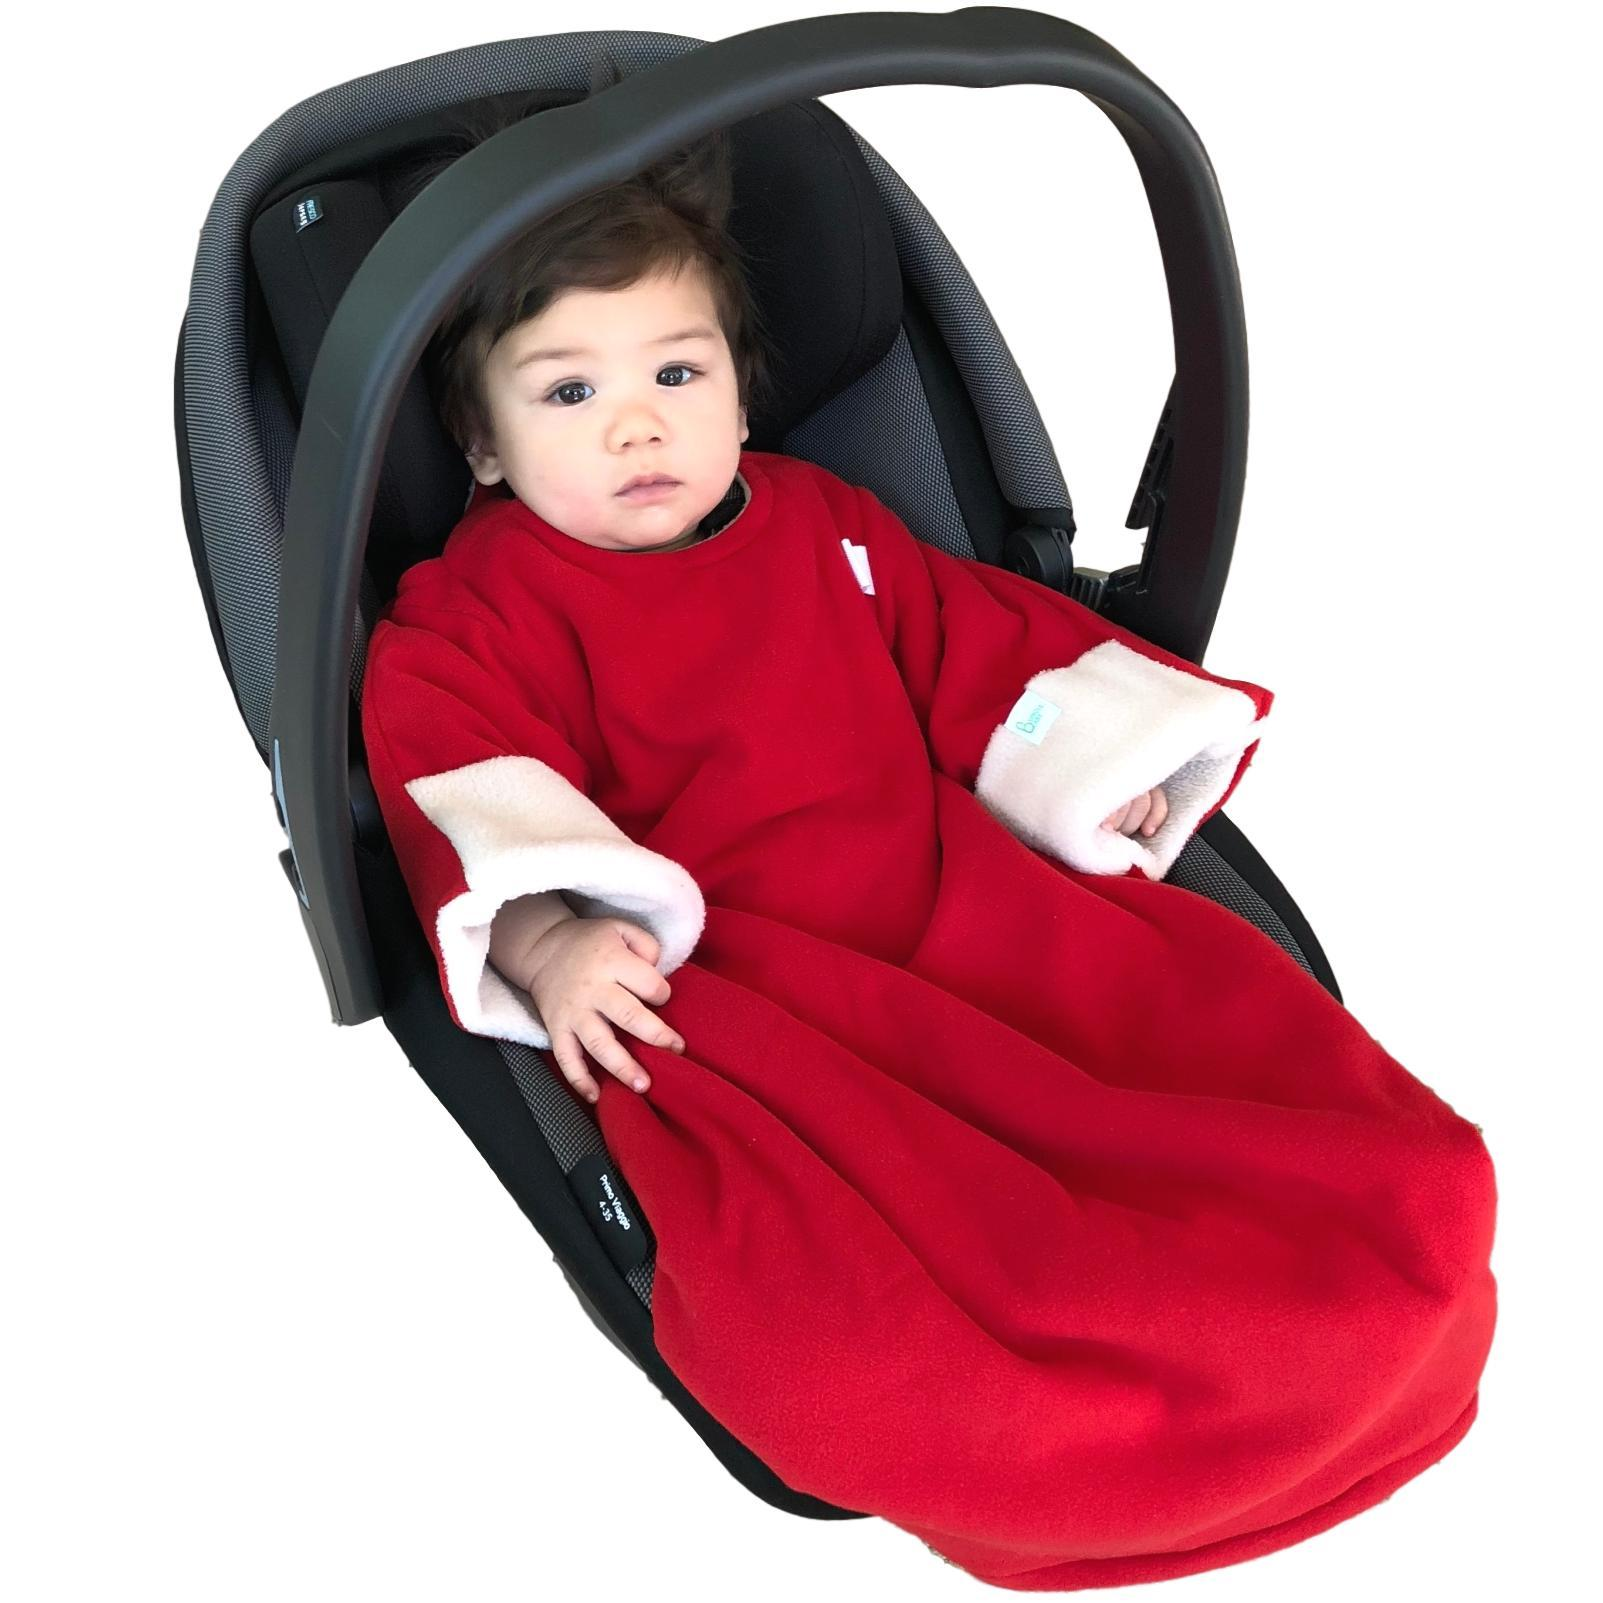 Baby Car Seat Blanket - Red